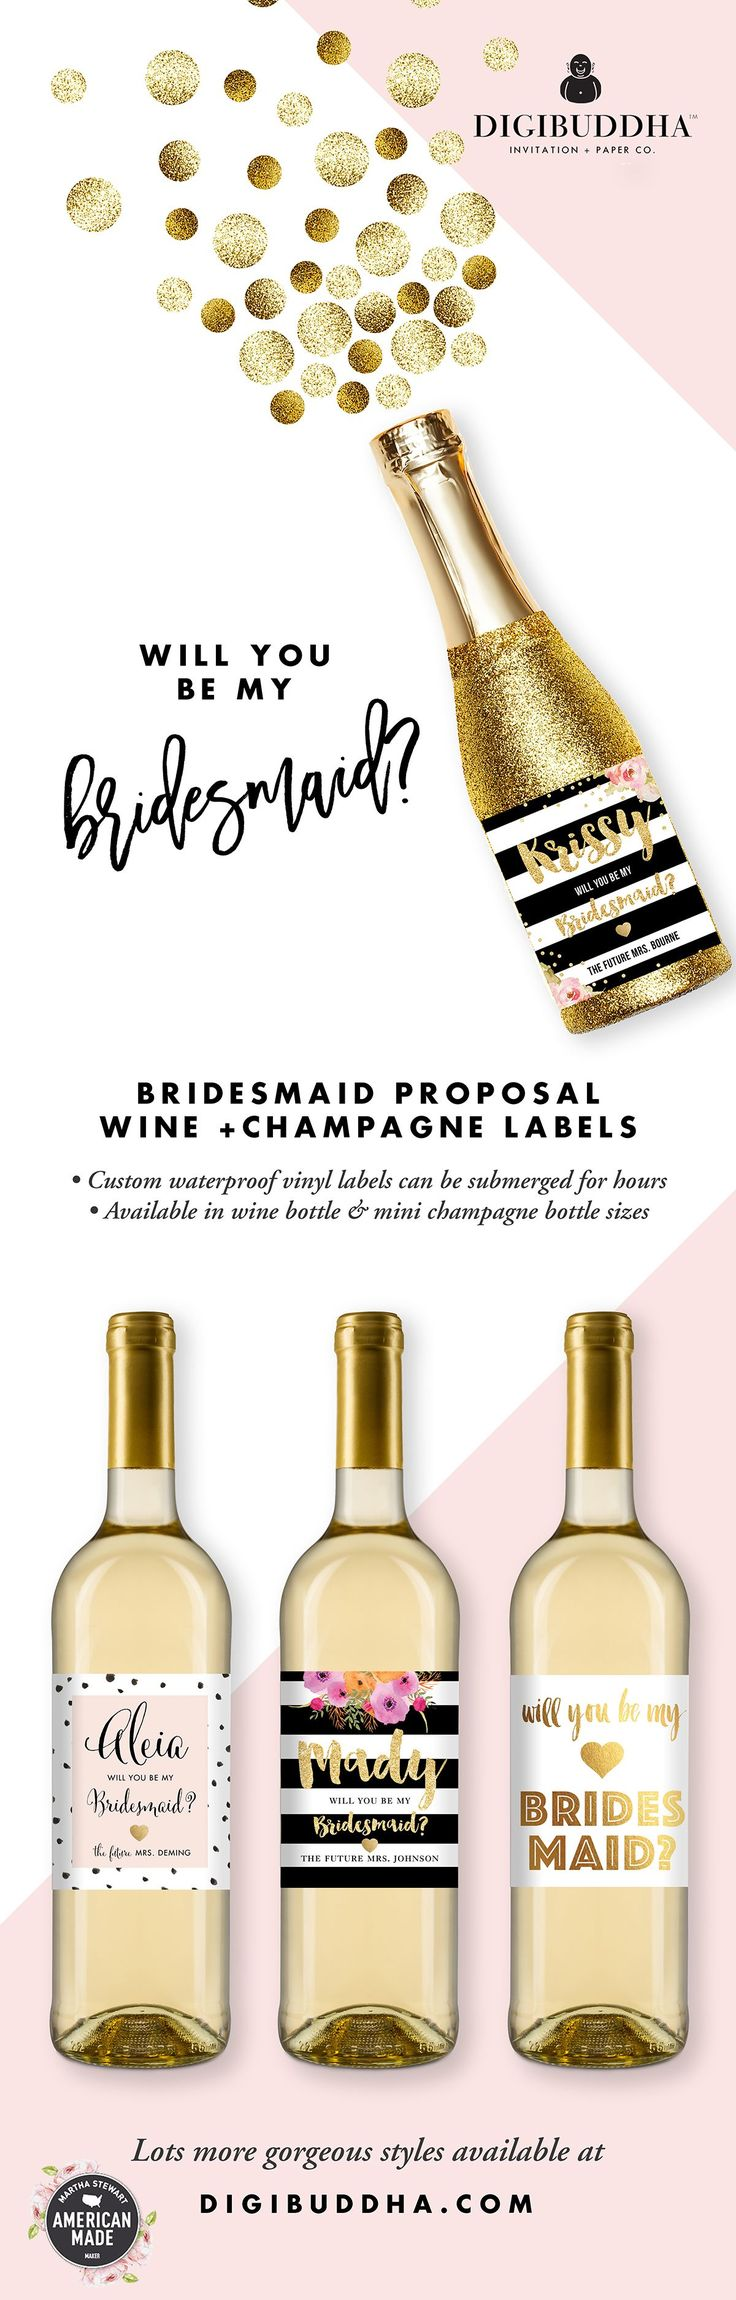 Will you be my bridesmaid? Bridesmaid proposal wine labels are a gorgeous, fun way to to ask your best girls to be there by your side on your wedding day!  Made with waterproof vinyl labels that can be submerged for hours. Available in wine bottle labels or mini champagne bottle labels. Also: Maid of Honor Proposal Wine labels, Matron of Honor Wine Labels in tons of gorgeous, trend setting styles.  digibuddha.com